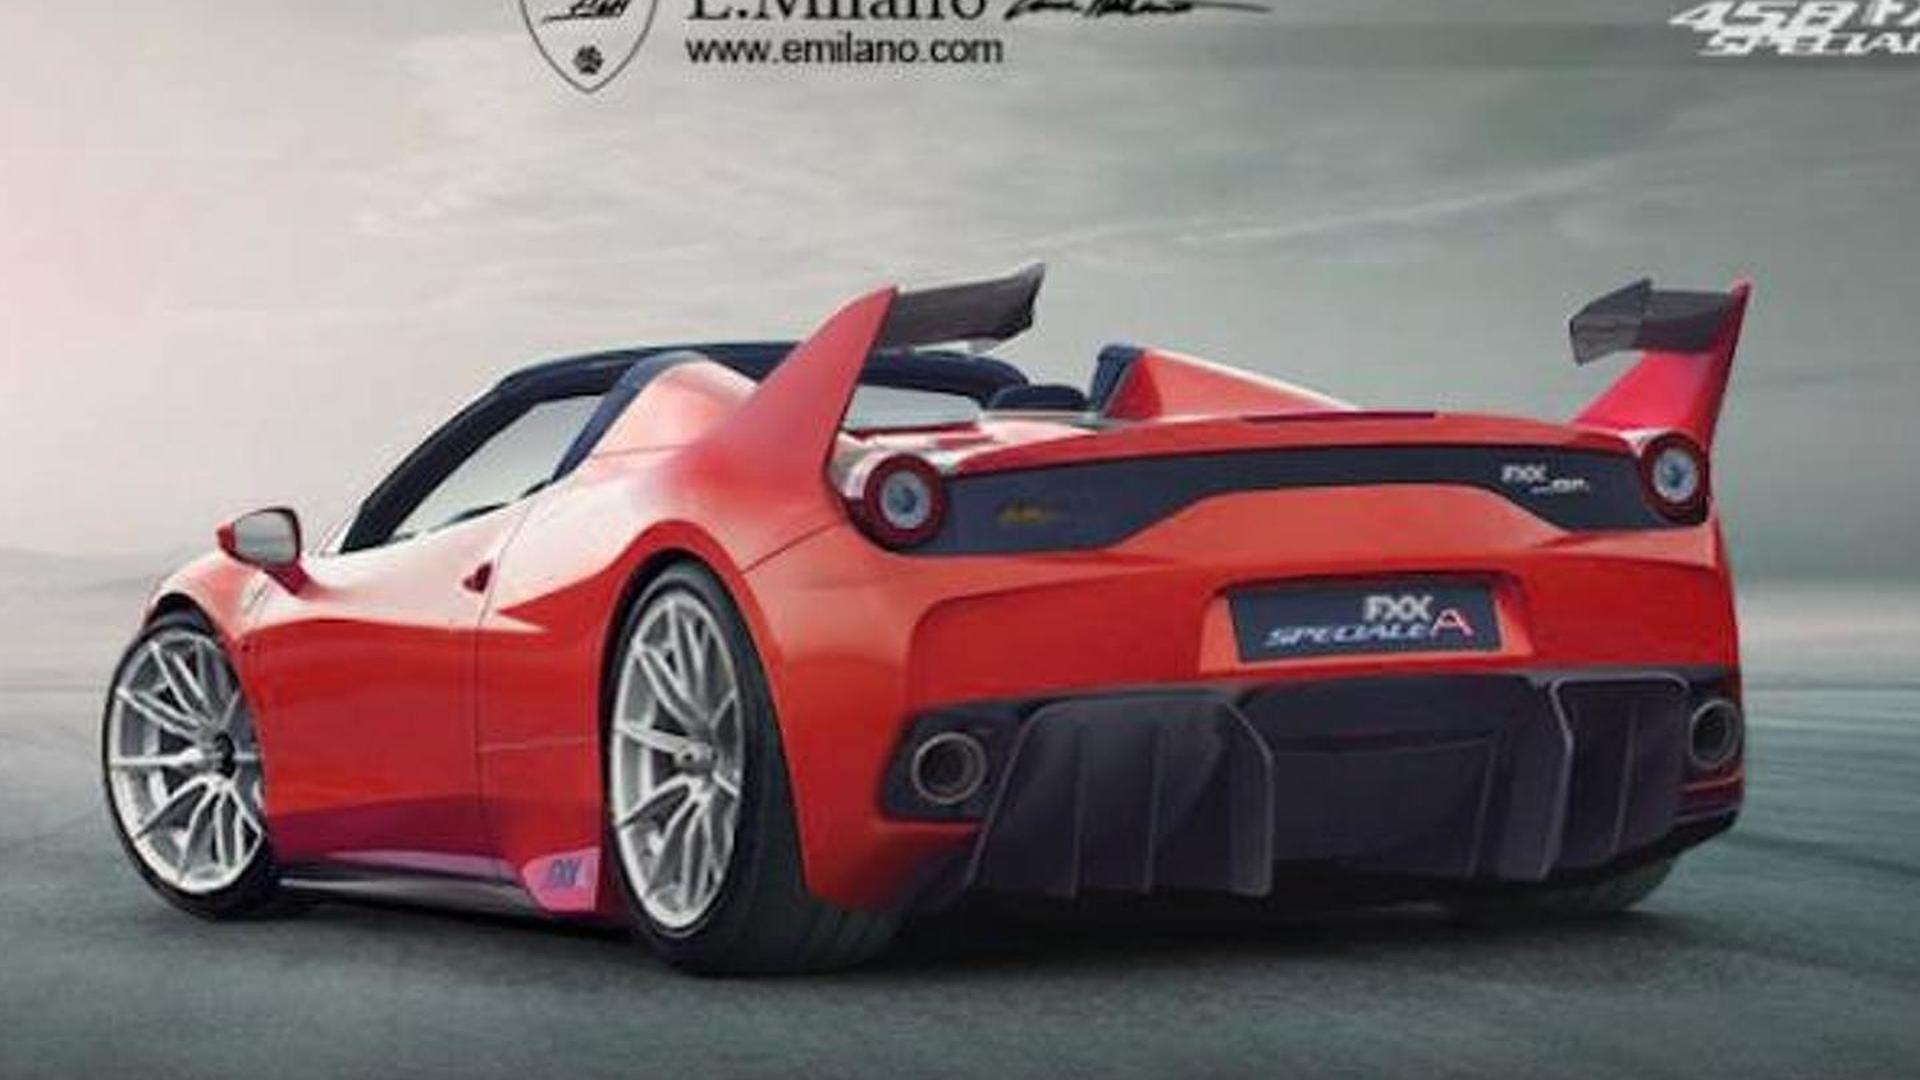 Ferrari 458 Fxx Speciale A Is A Virtual Track Only 458 Speciale Aperta